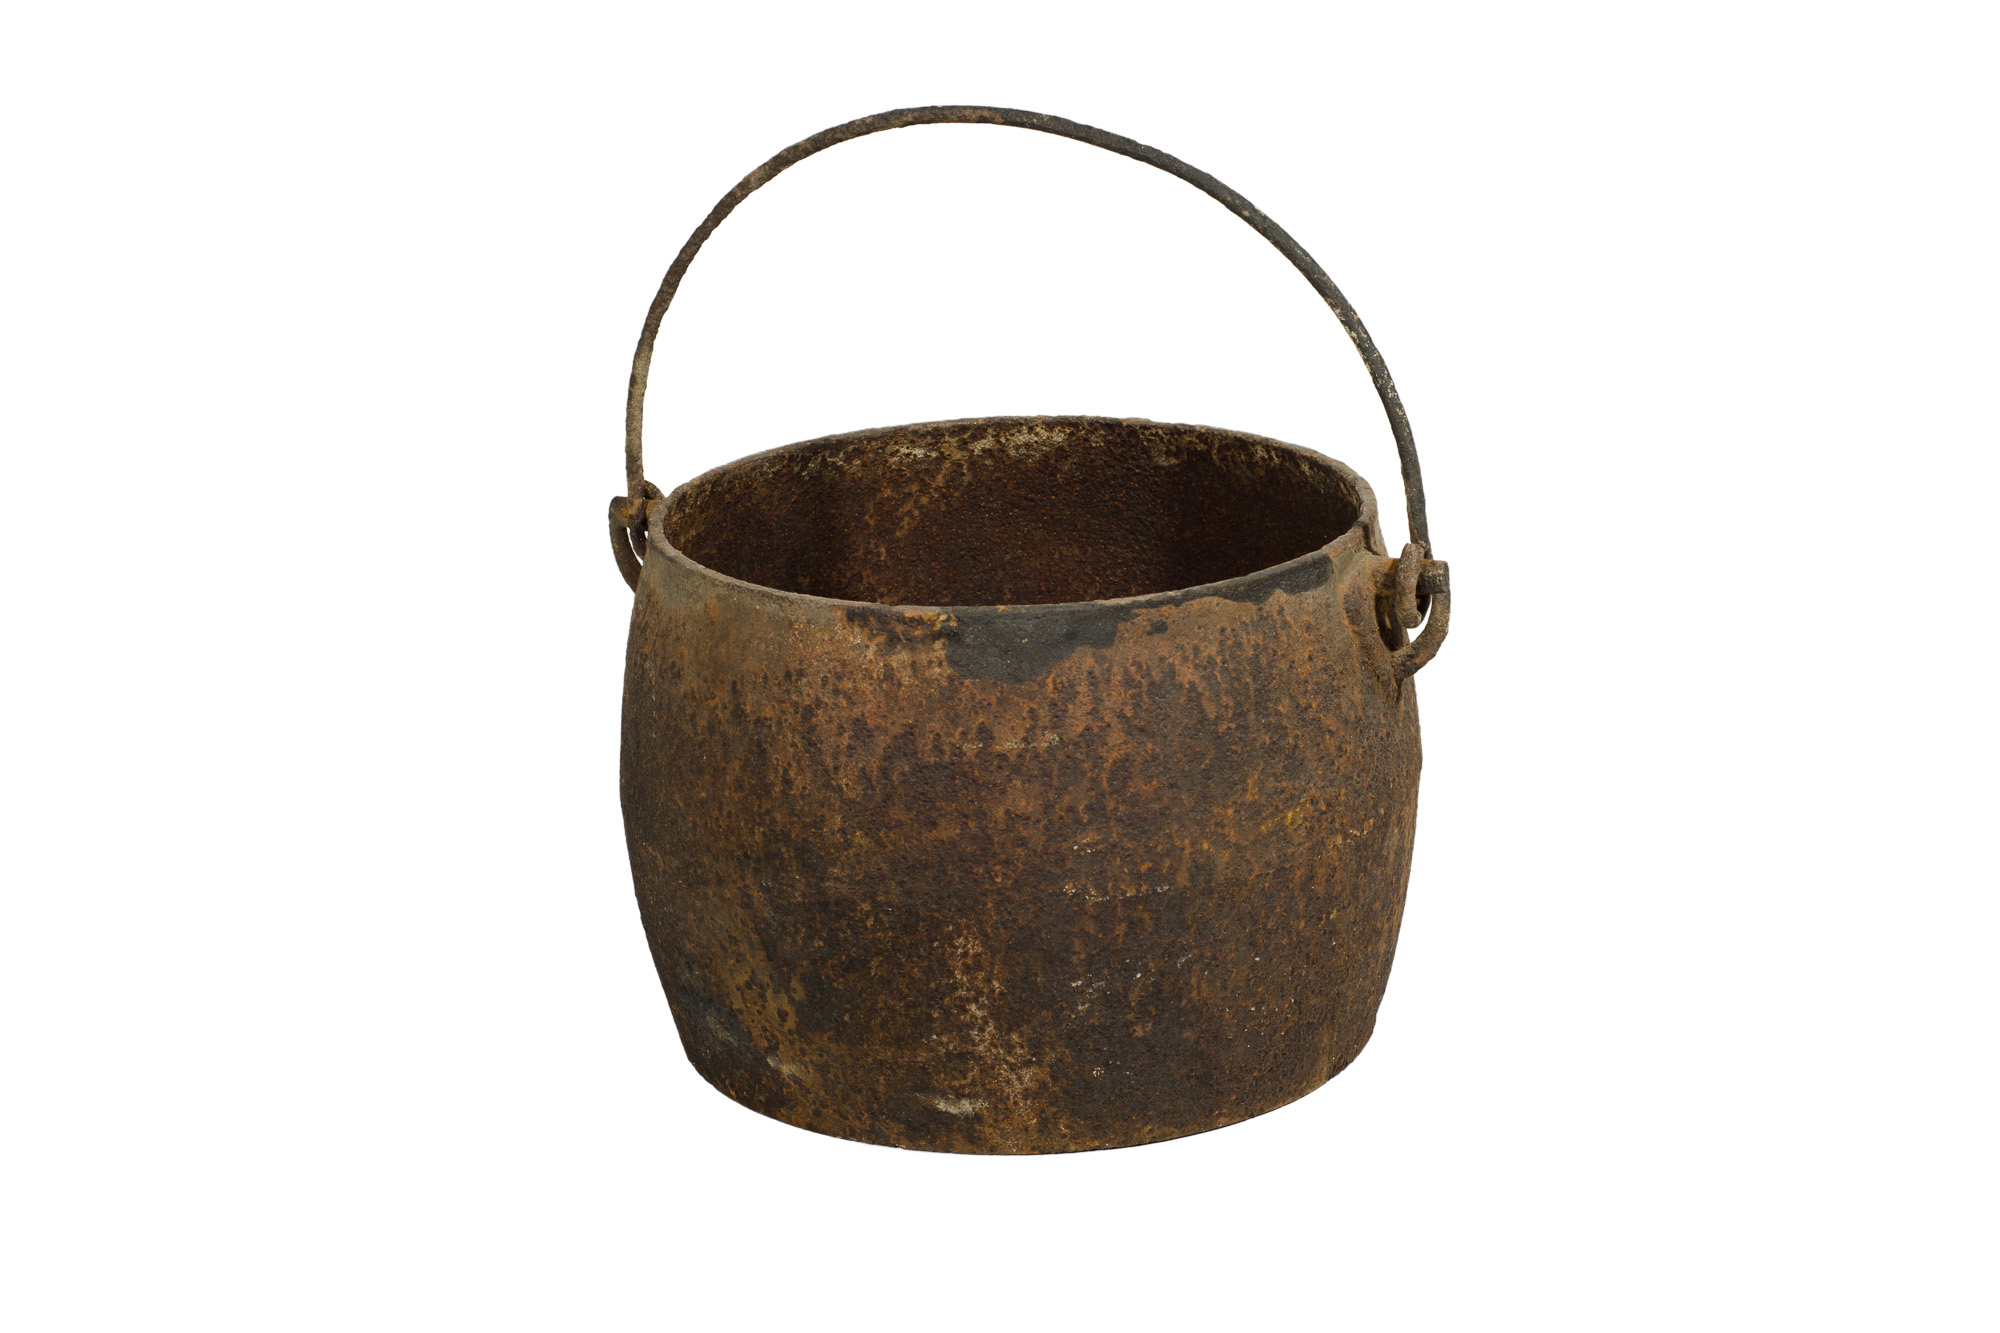 Cast Iron Pot Antique Cast Iron Pot With Handle